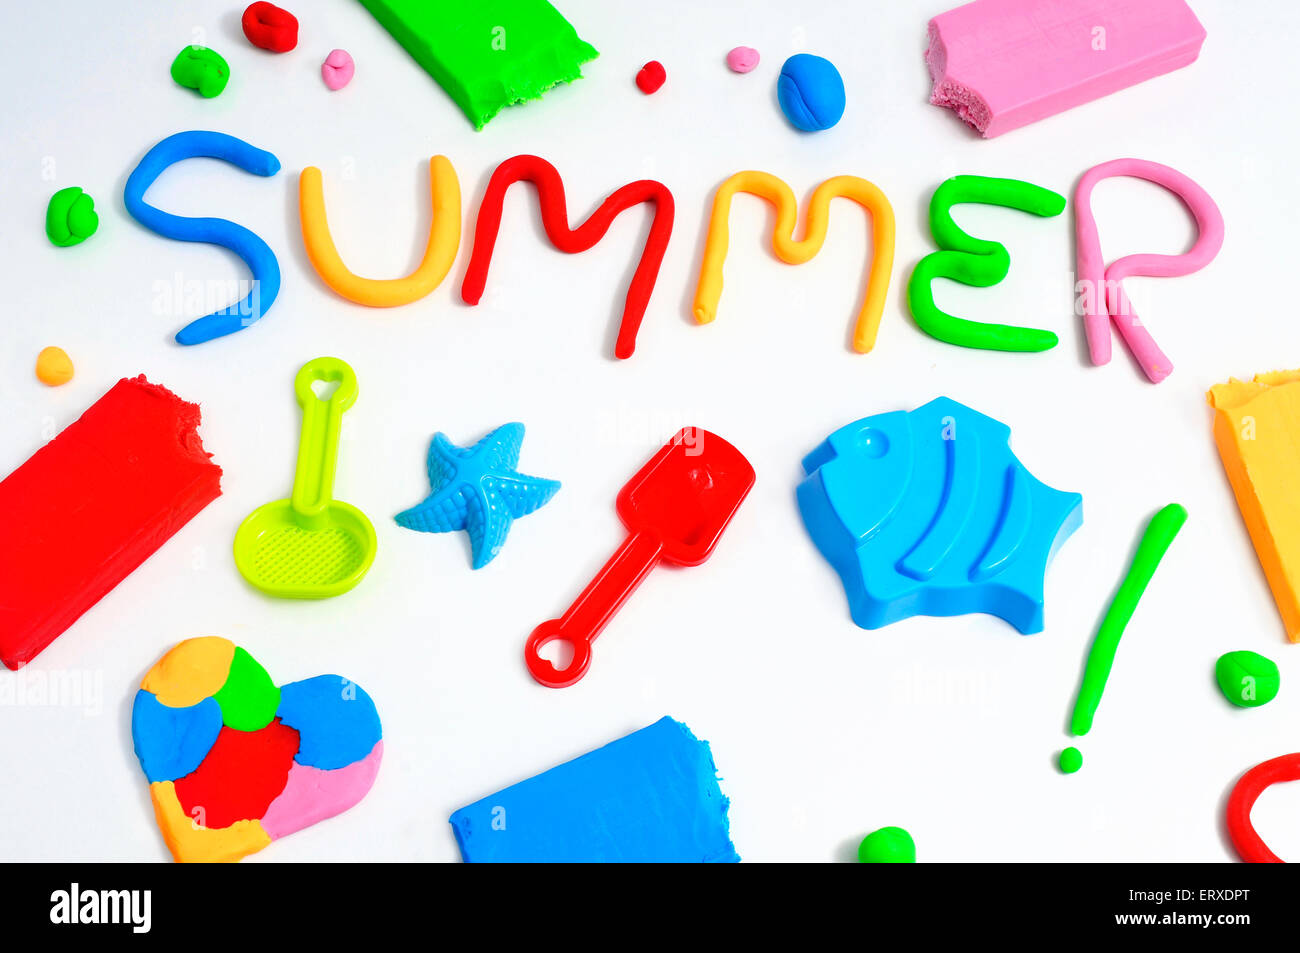 the text summer made from modelling clay of different colors and some beach toys such as toy shovels and sand moulds, - Stock Image